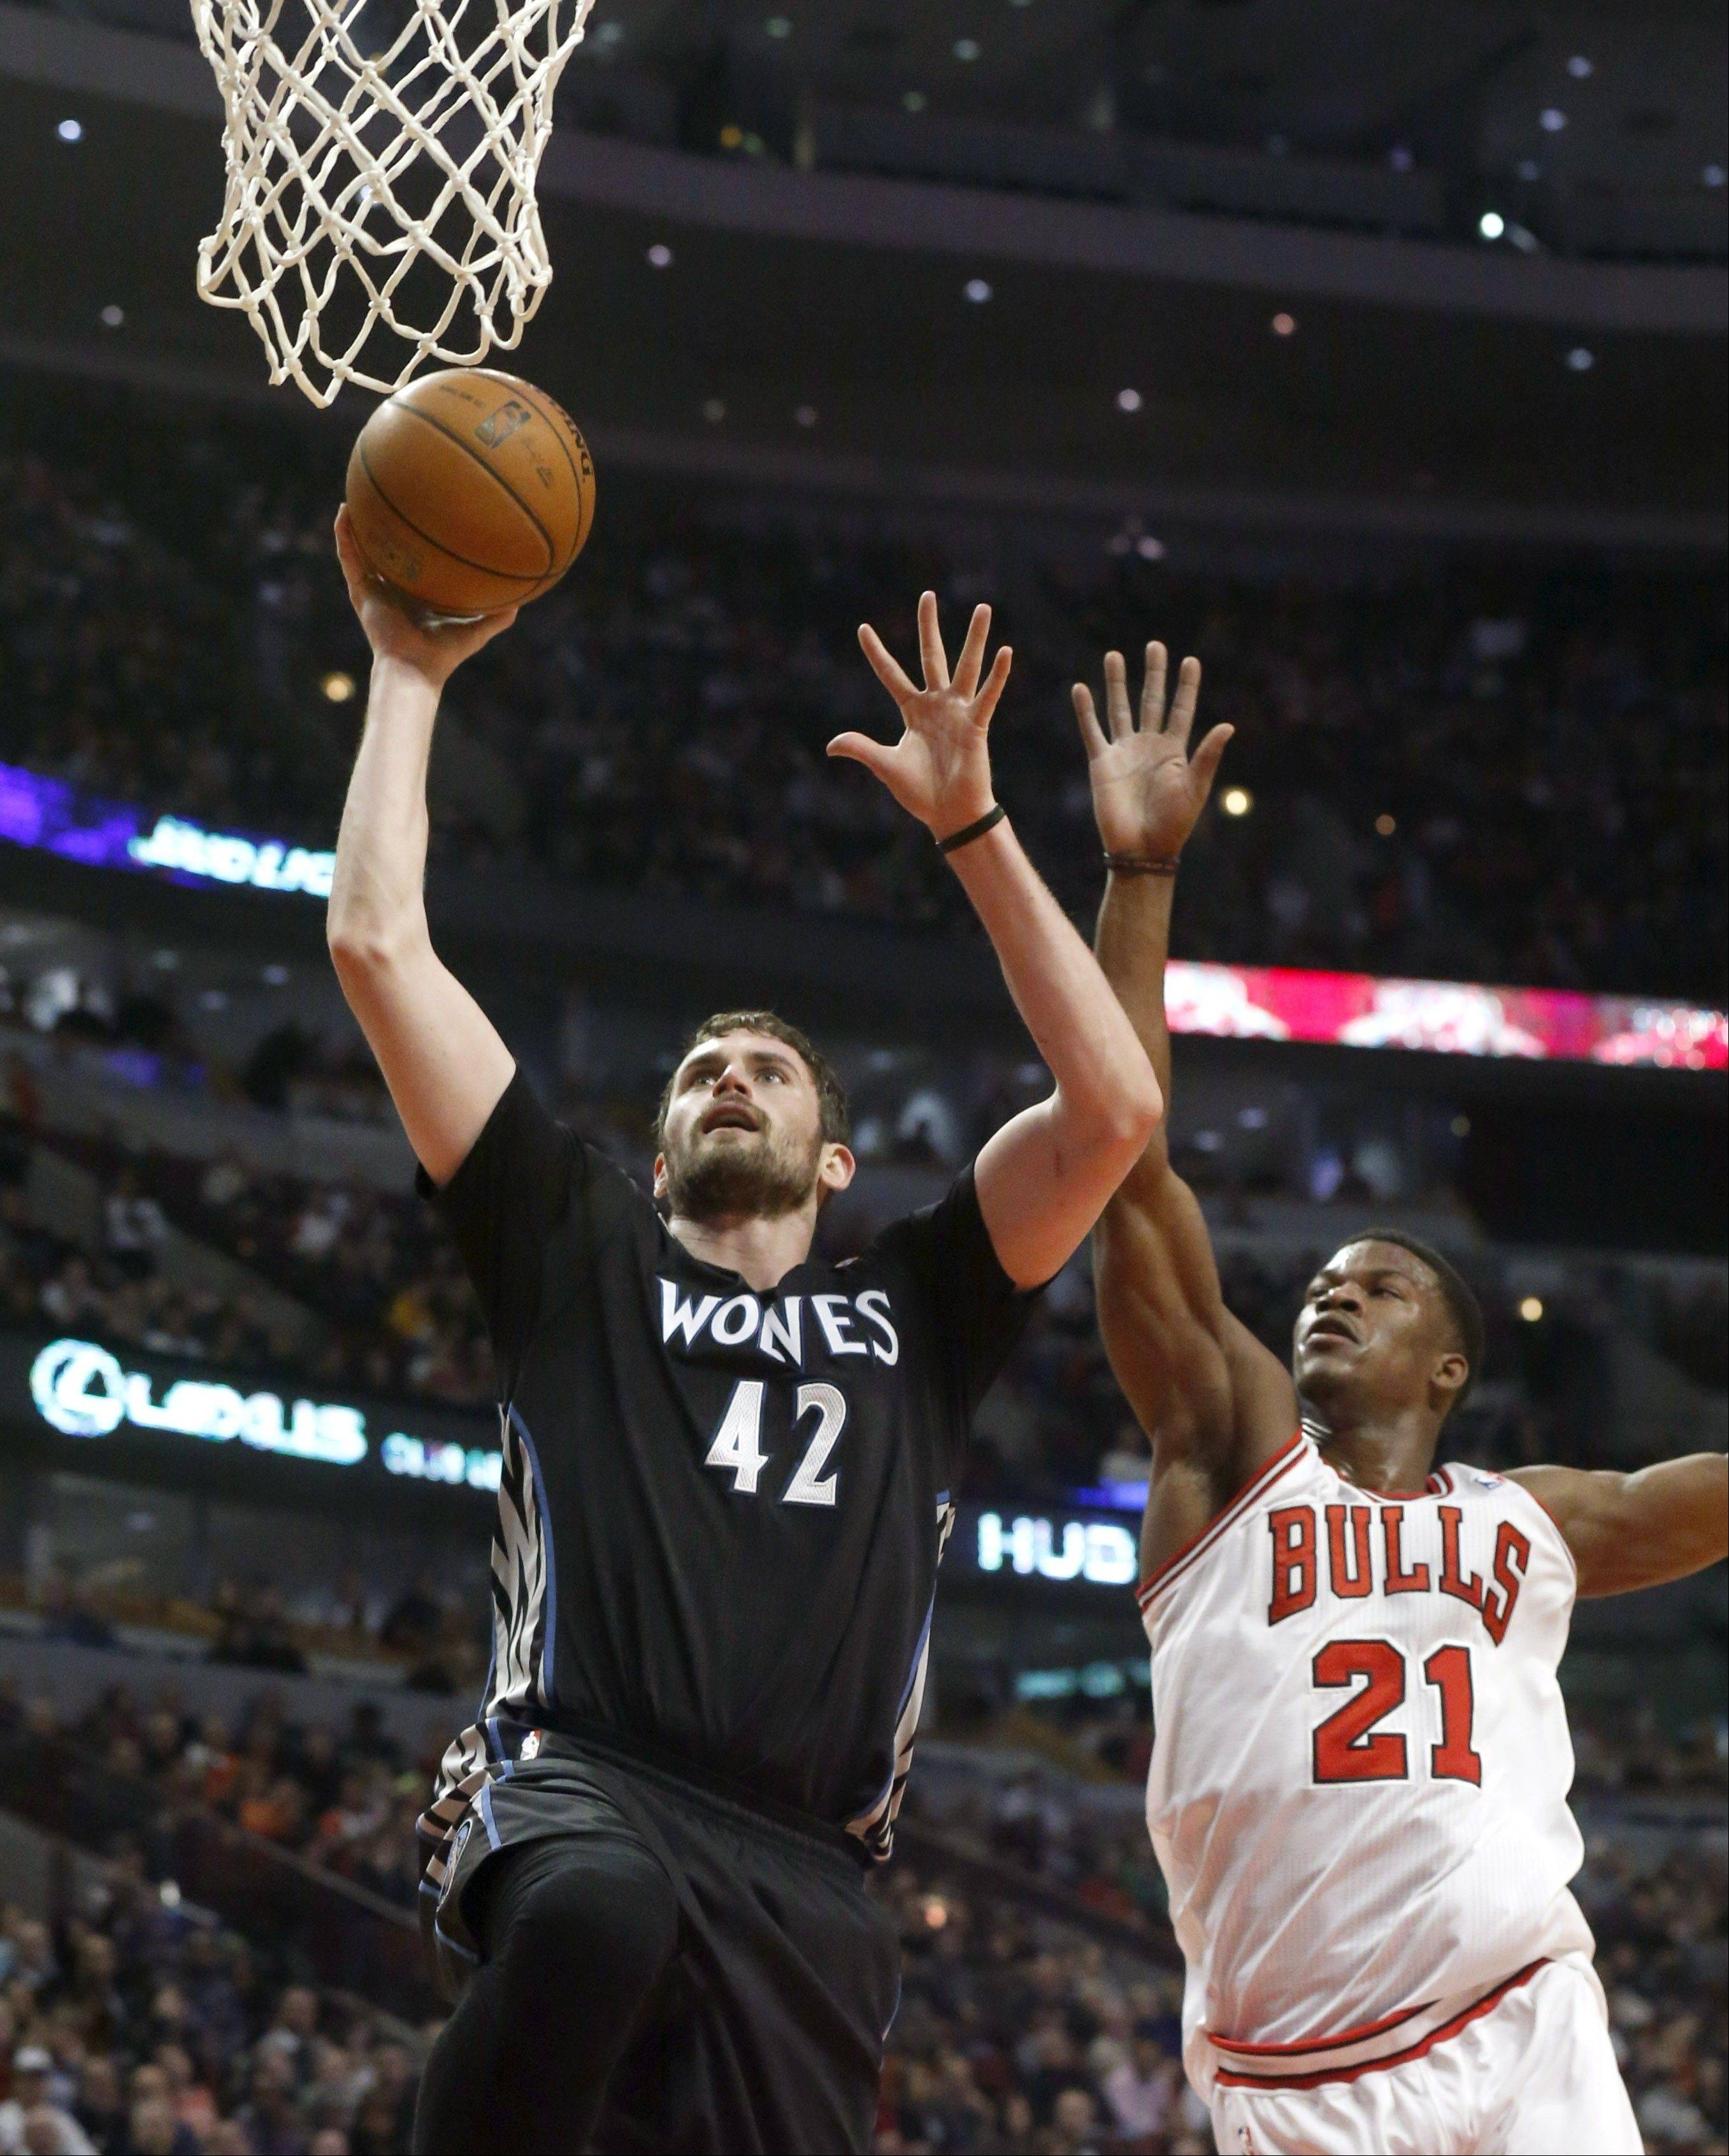 Minnesota Timberwolves forward Kevin Love (42) scores past Chicago Bulls guard Jimmy Butler (21) during the first half of an NBA basketball game Monday in Chicago.